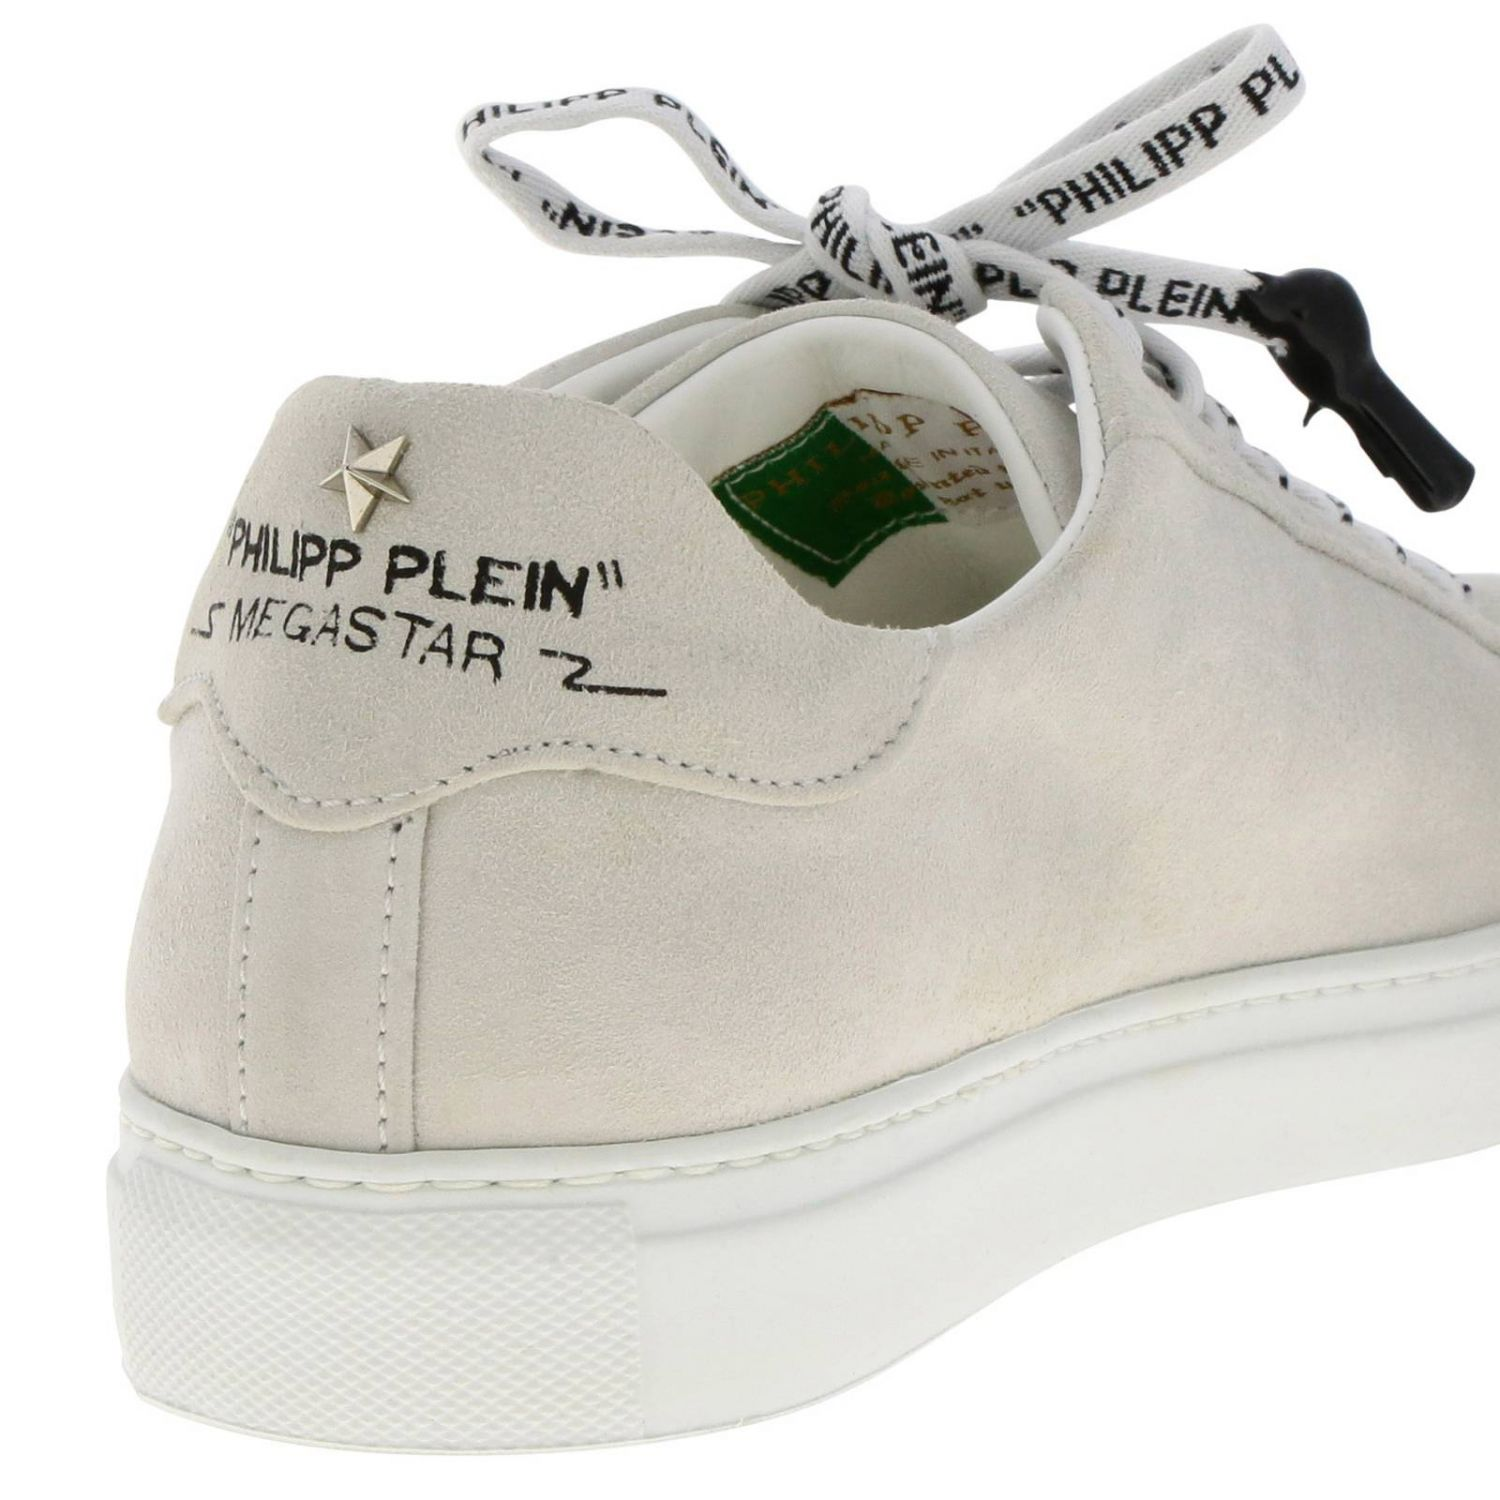 Shoes men Philipp Plein white 4